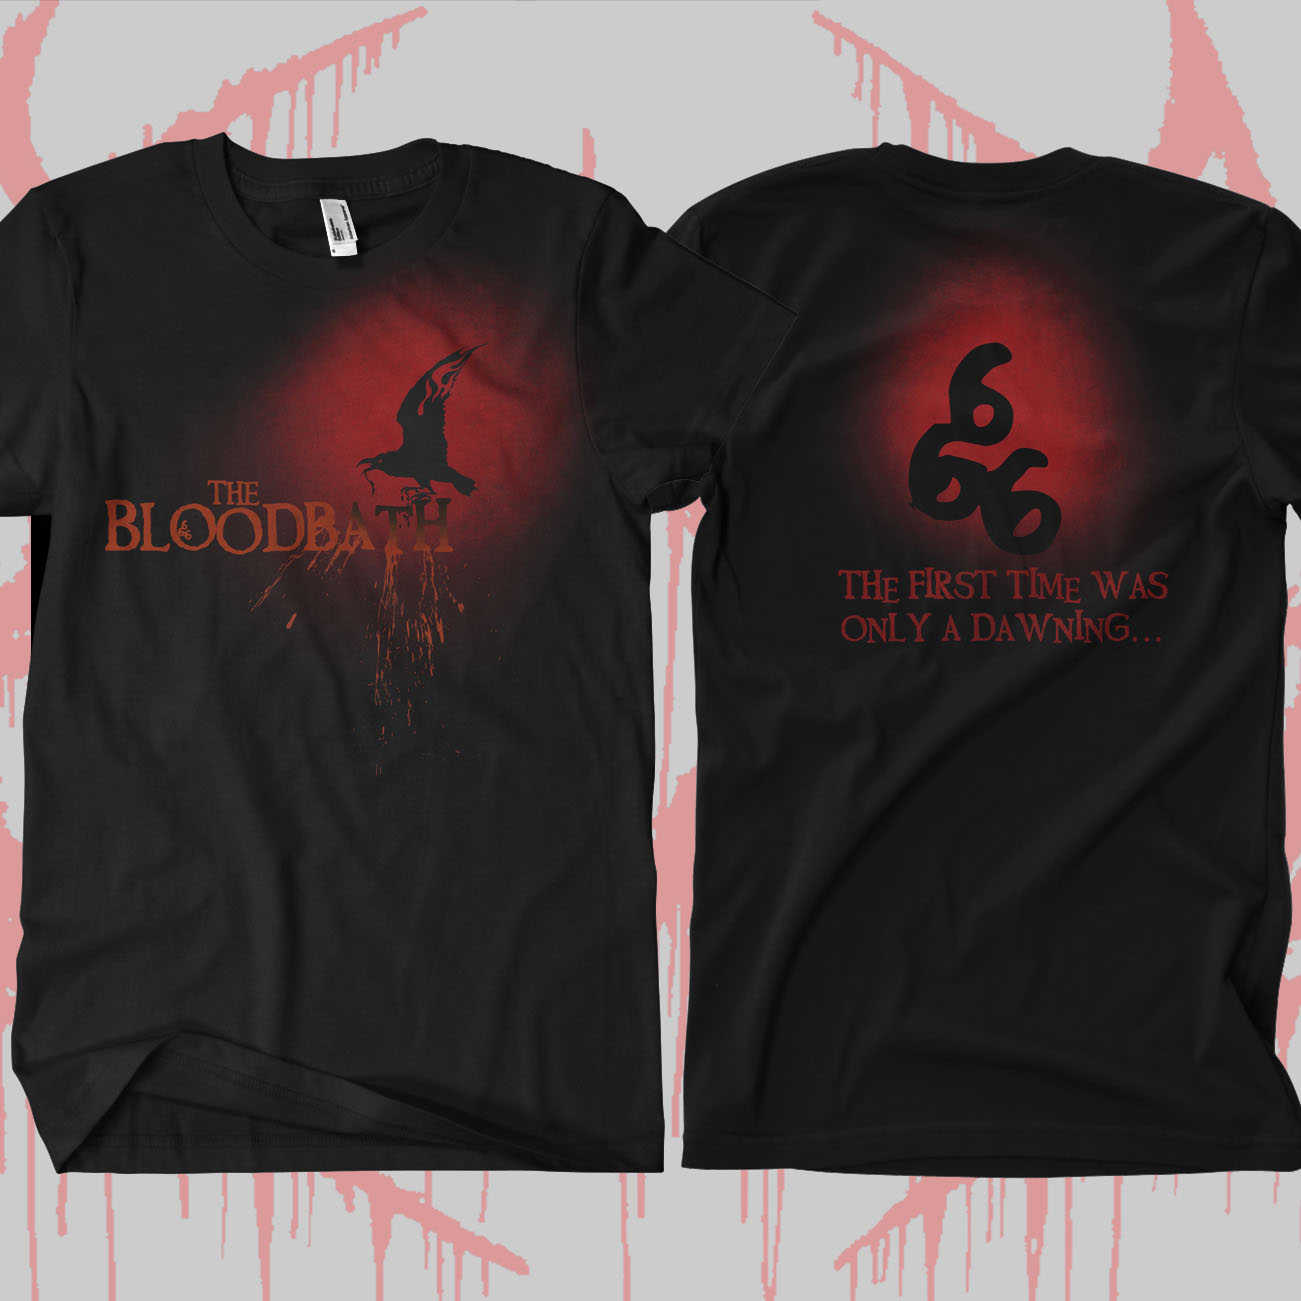 Bloodbath - Omen T-Shirt - Bloodbath